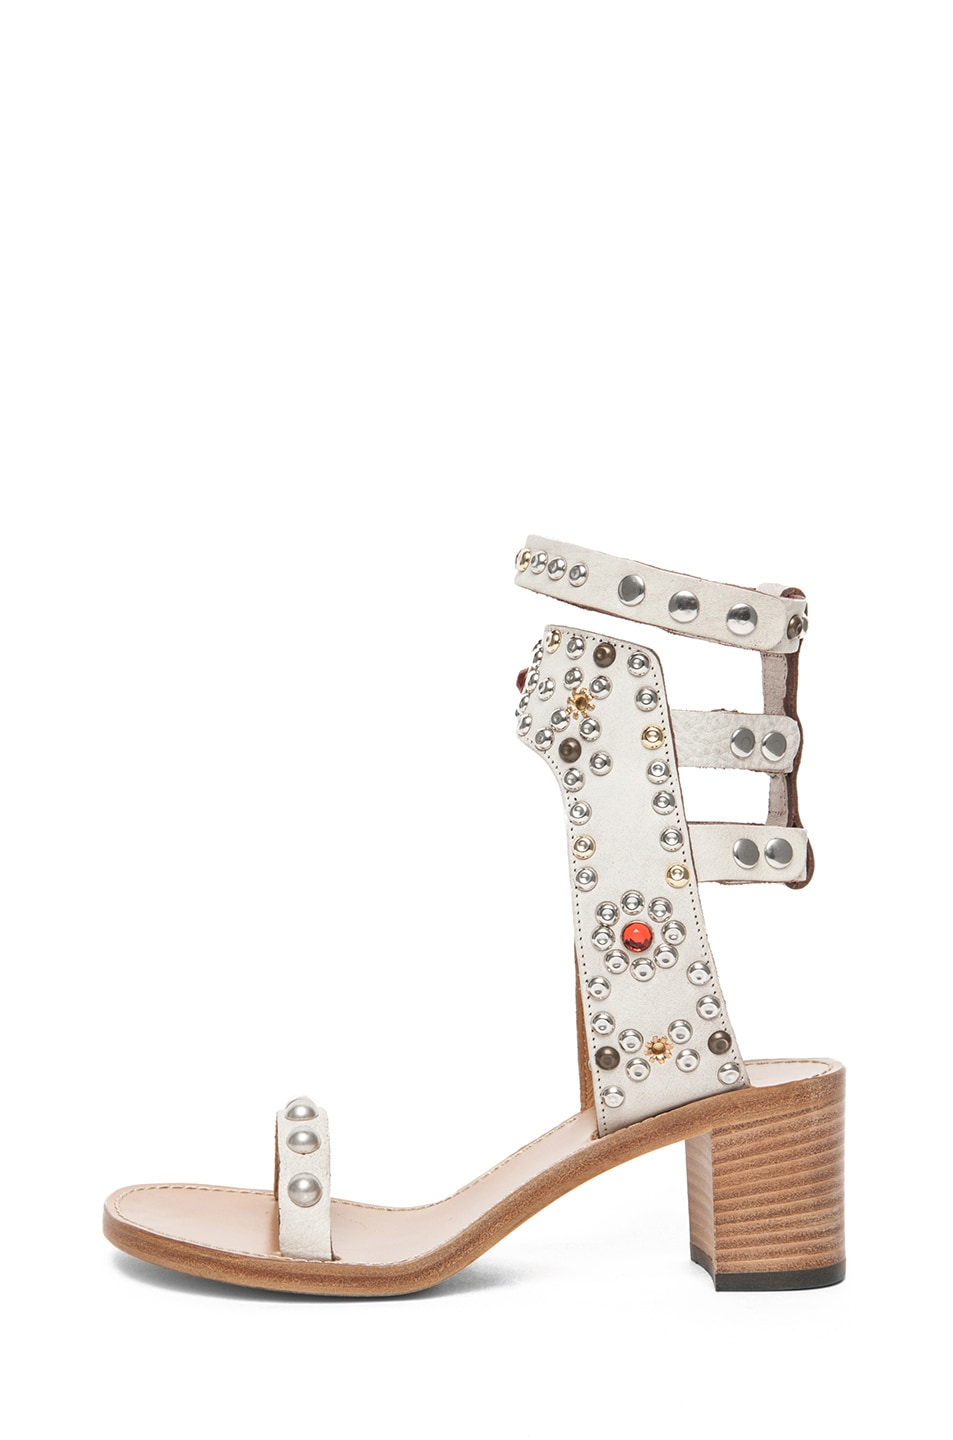 Image 1 of Isabel Marant Caroll Strassed and Studded Sandal in Craie